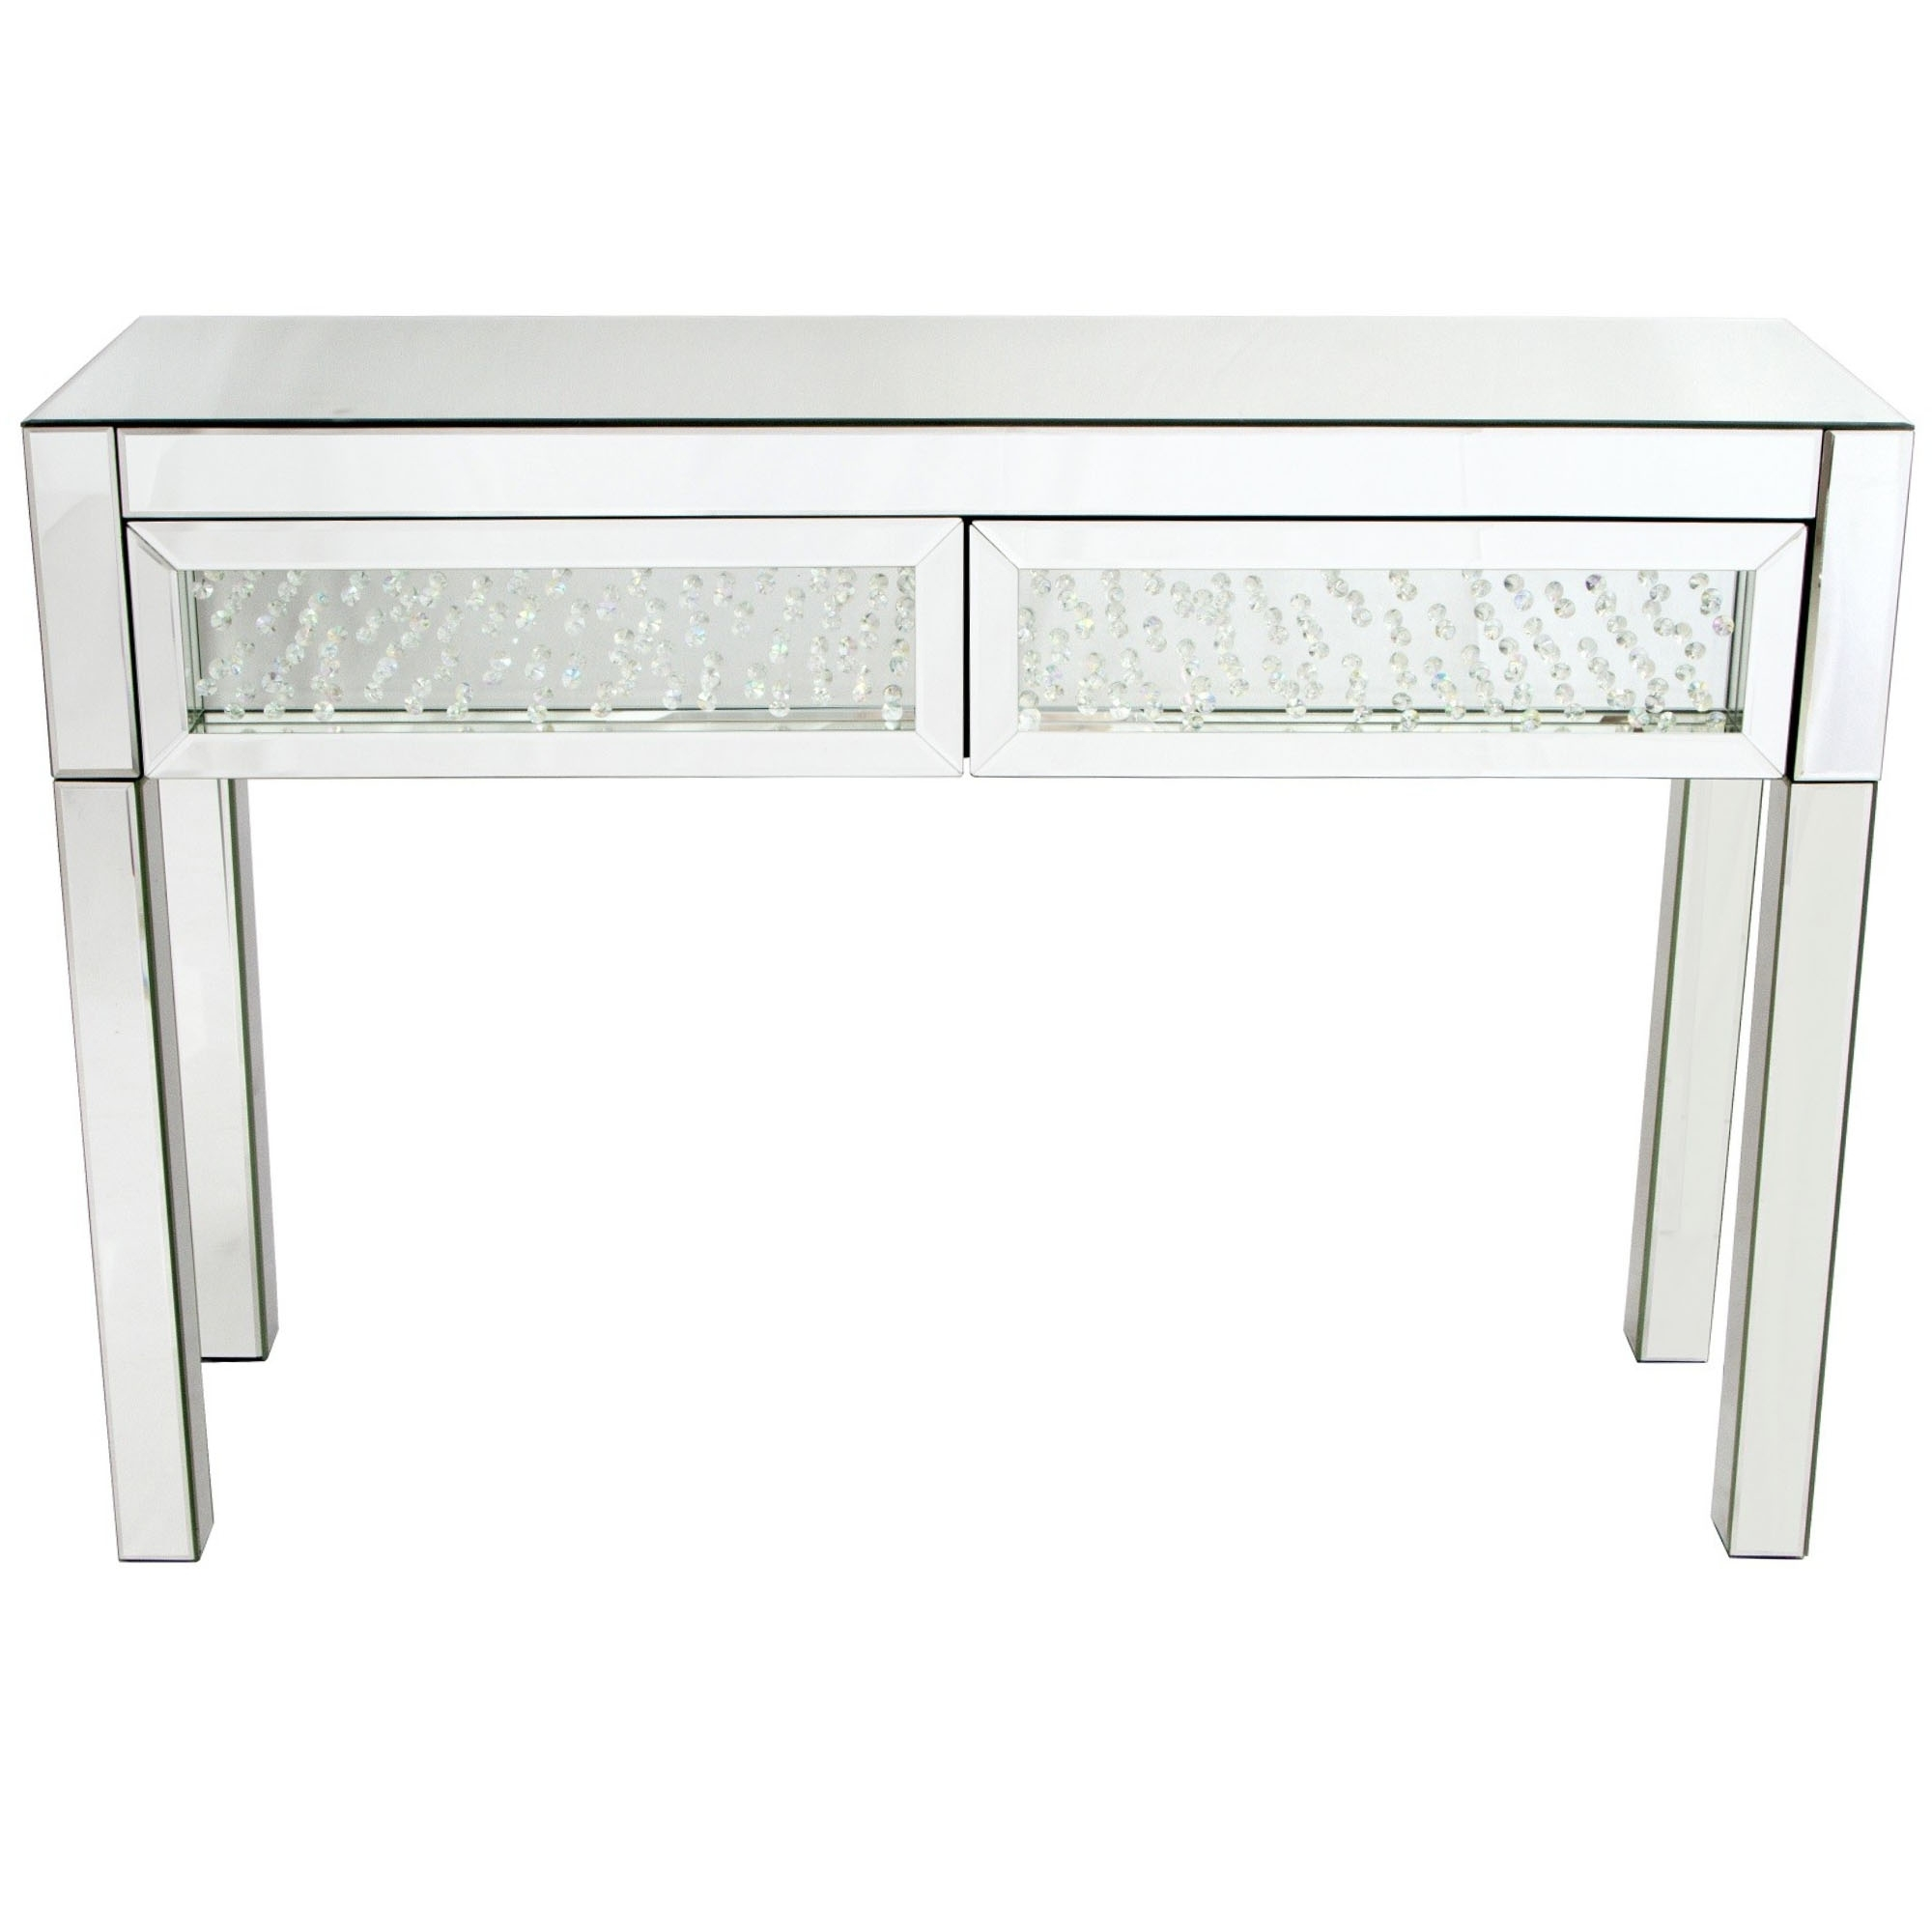 mirror console table. Vicenza Mirrored Console Table Mirror